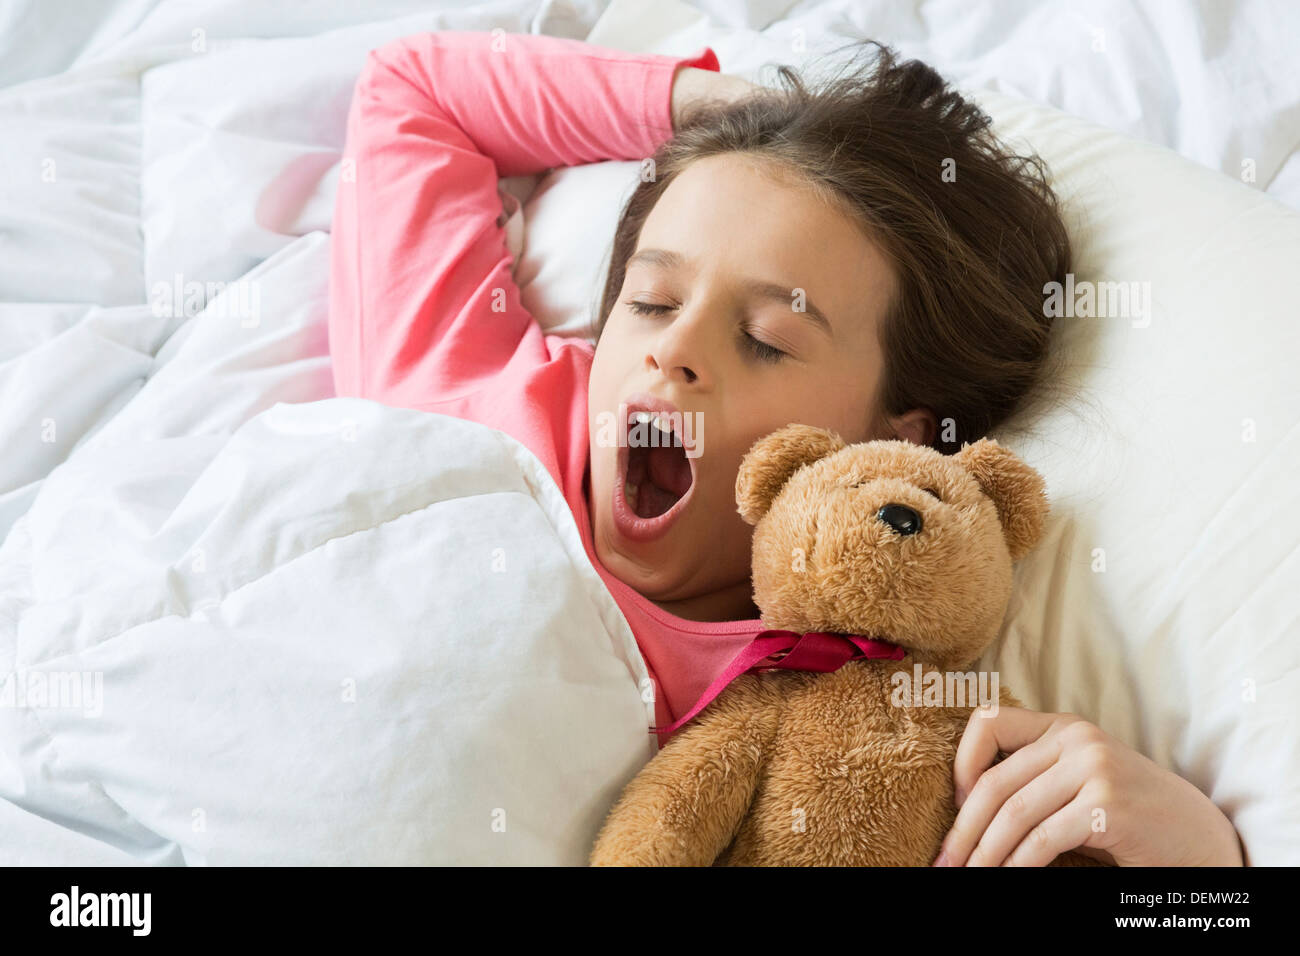 Jeune fille se réveillant yawning in bed Photo Stock